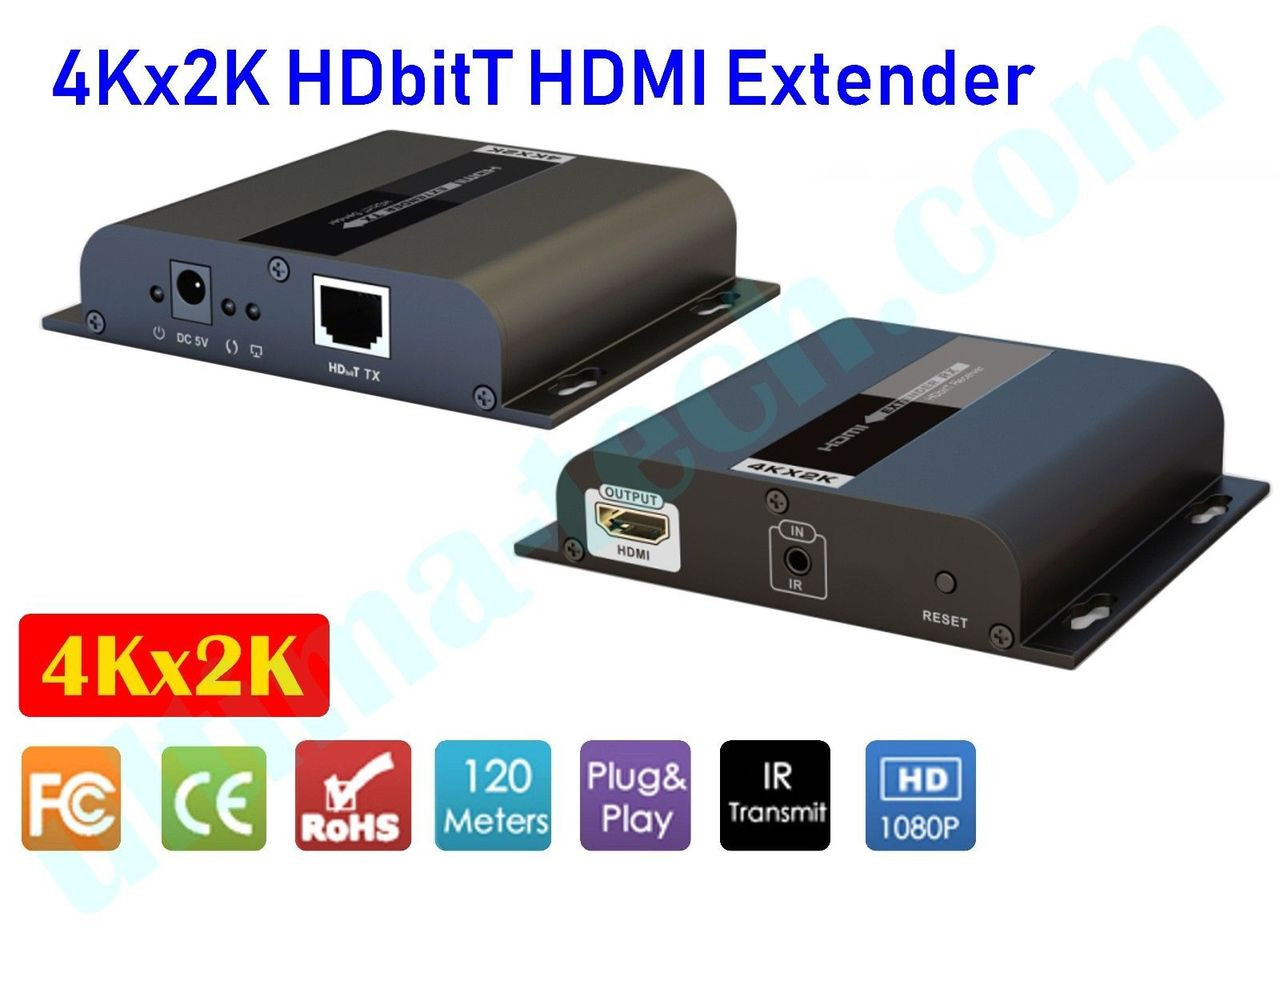 4kx2k Hdbitt Hdmi Ir Extender Up To 120m Over Ip Cat5 Cat5e Cat6 Repeaters Transmitter Circuit Schematic Image 1